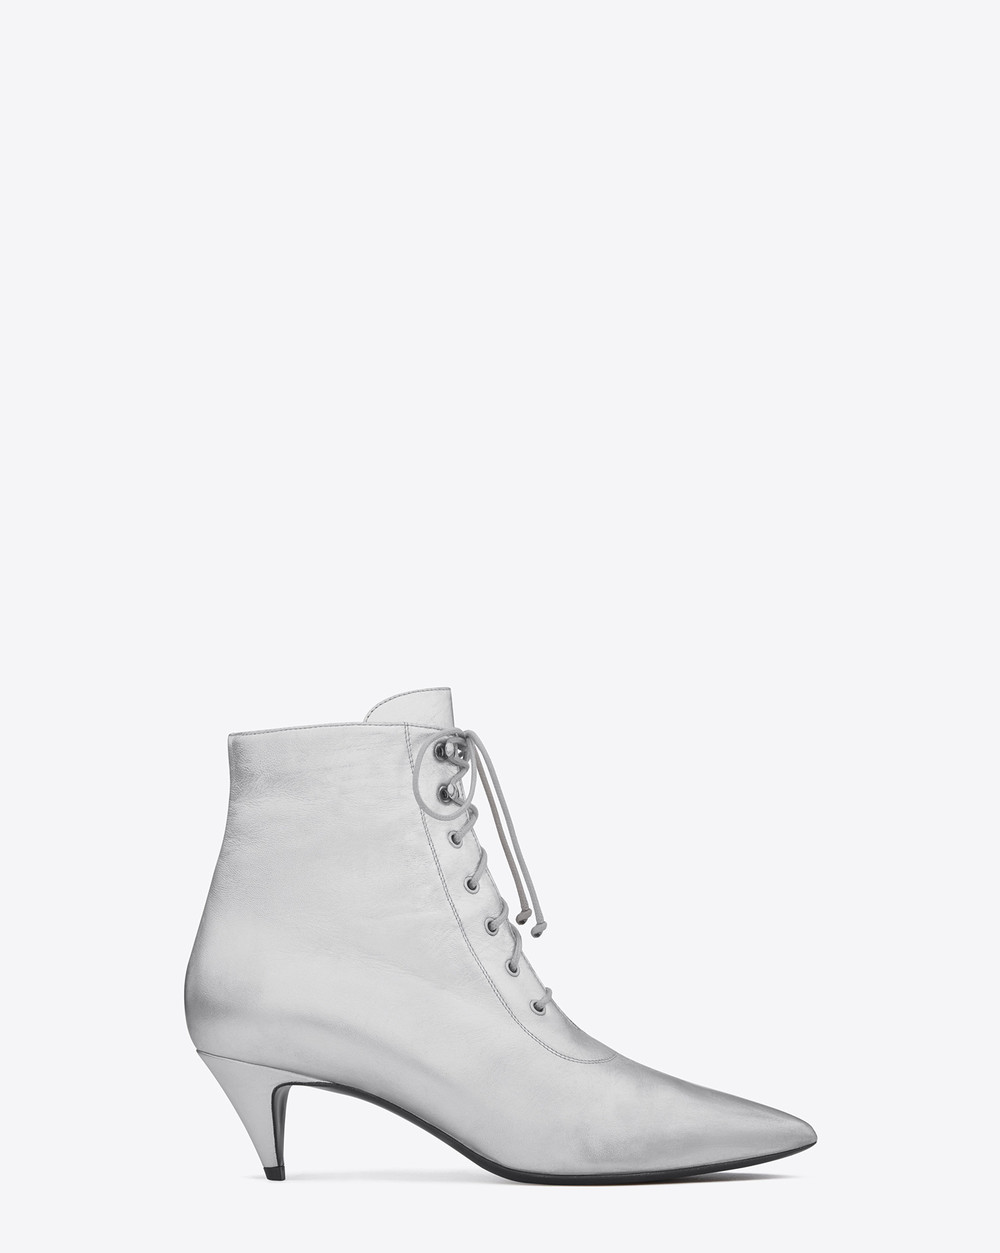 Saint_Laurent_Cat_Boots 05.jpg